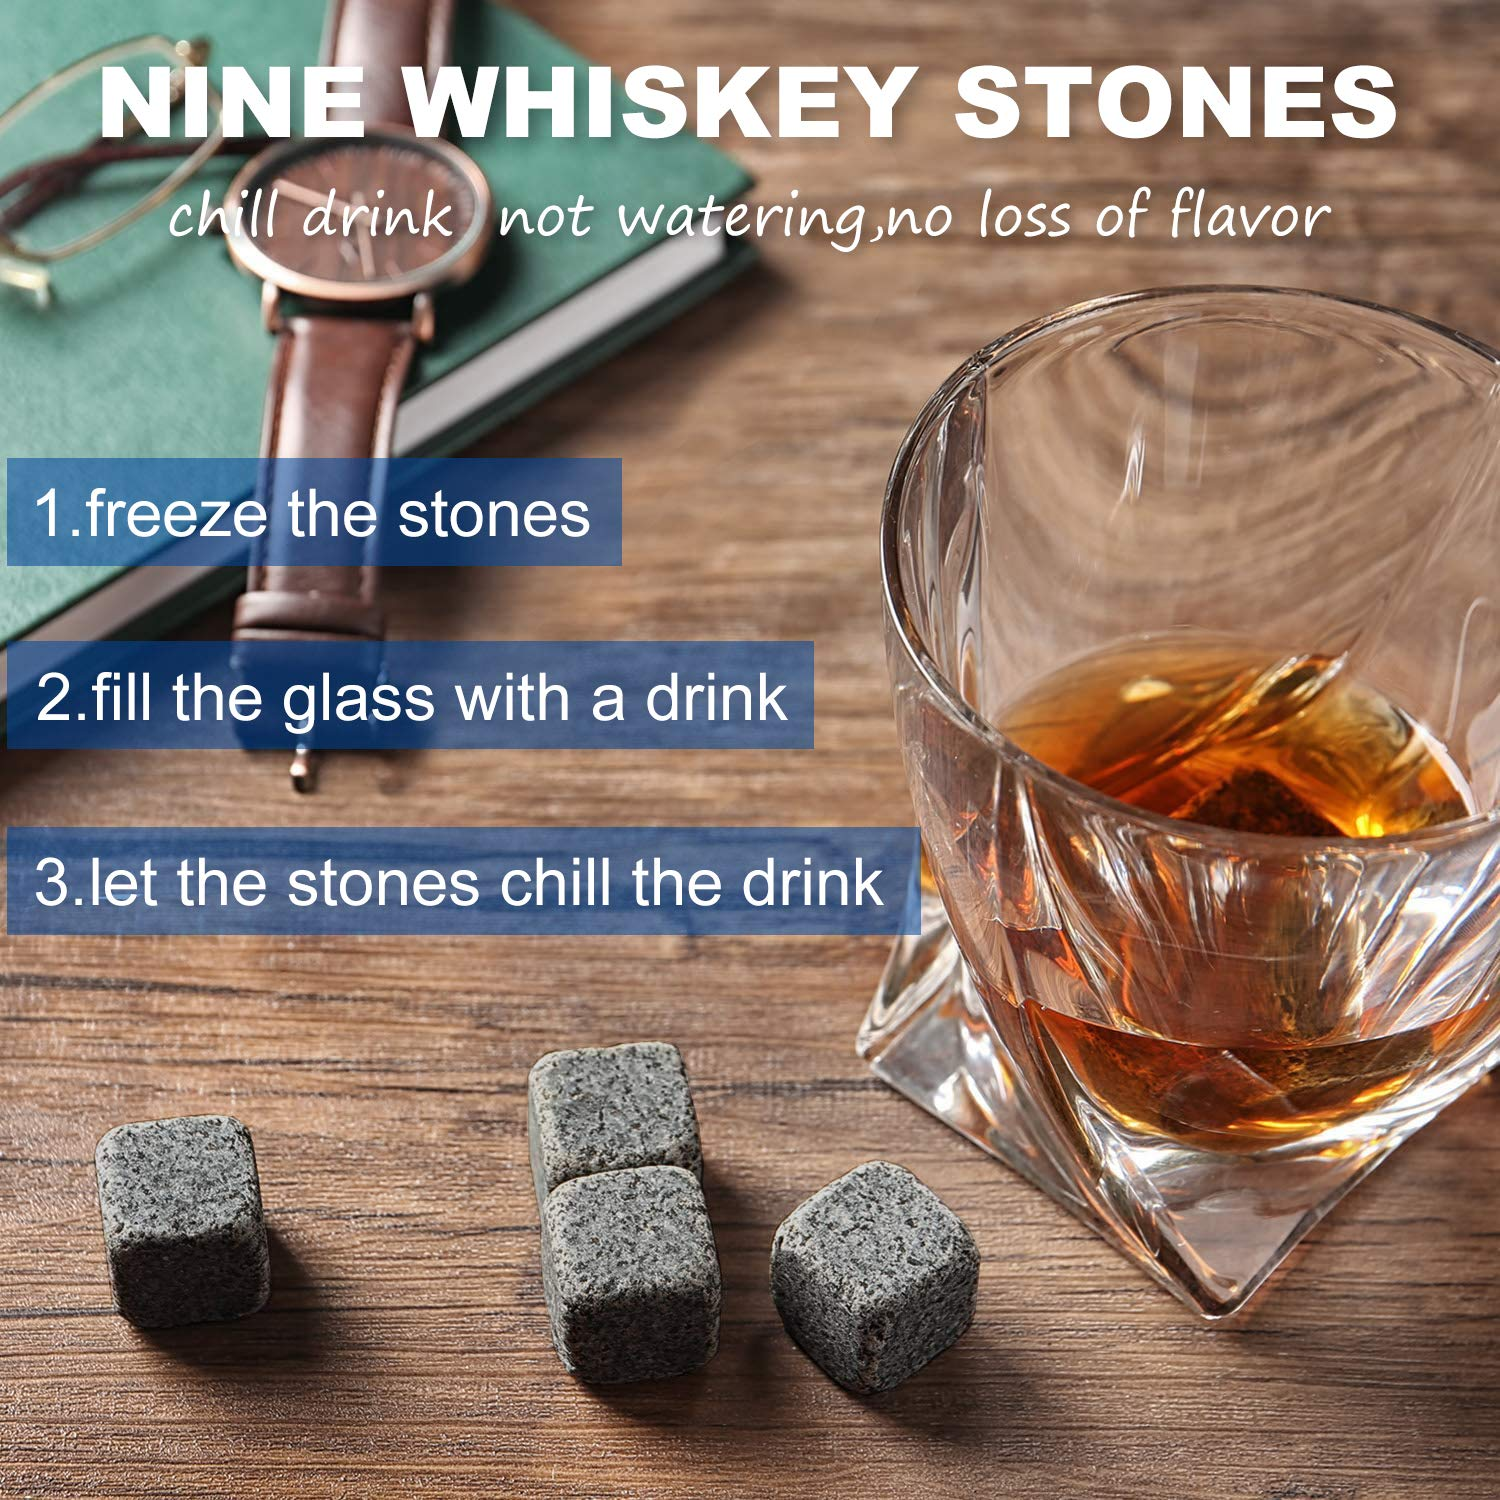 Whiskey Stones Gift Set - Pack of 9 Granite Chilling Whiskey Rocks with Storage Pouch and Stainless steel Tong in Wooden Gift Box for Men Dad Boyfriend Idea for Birthday, Anniversary, Fathers Day